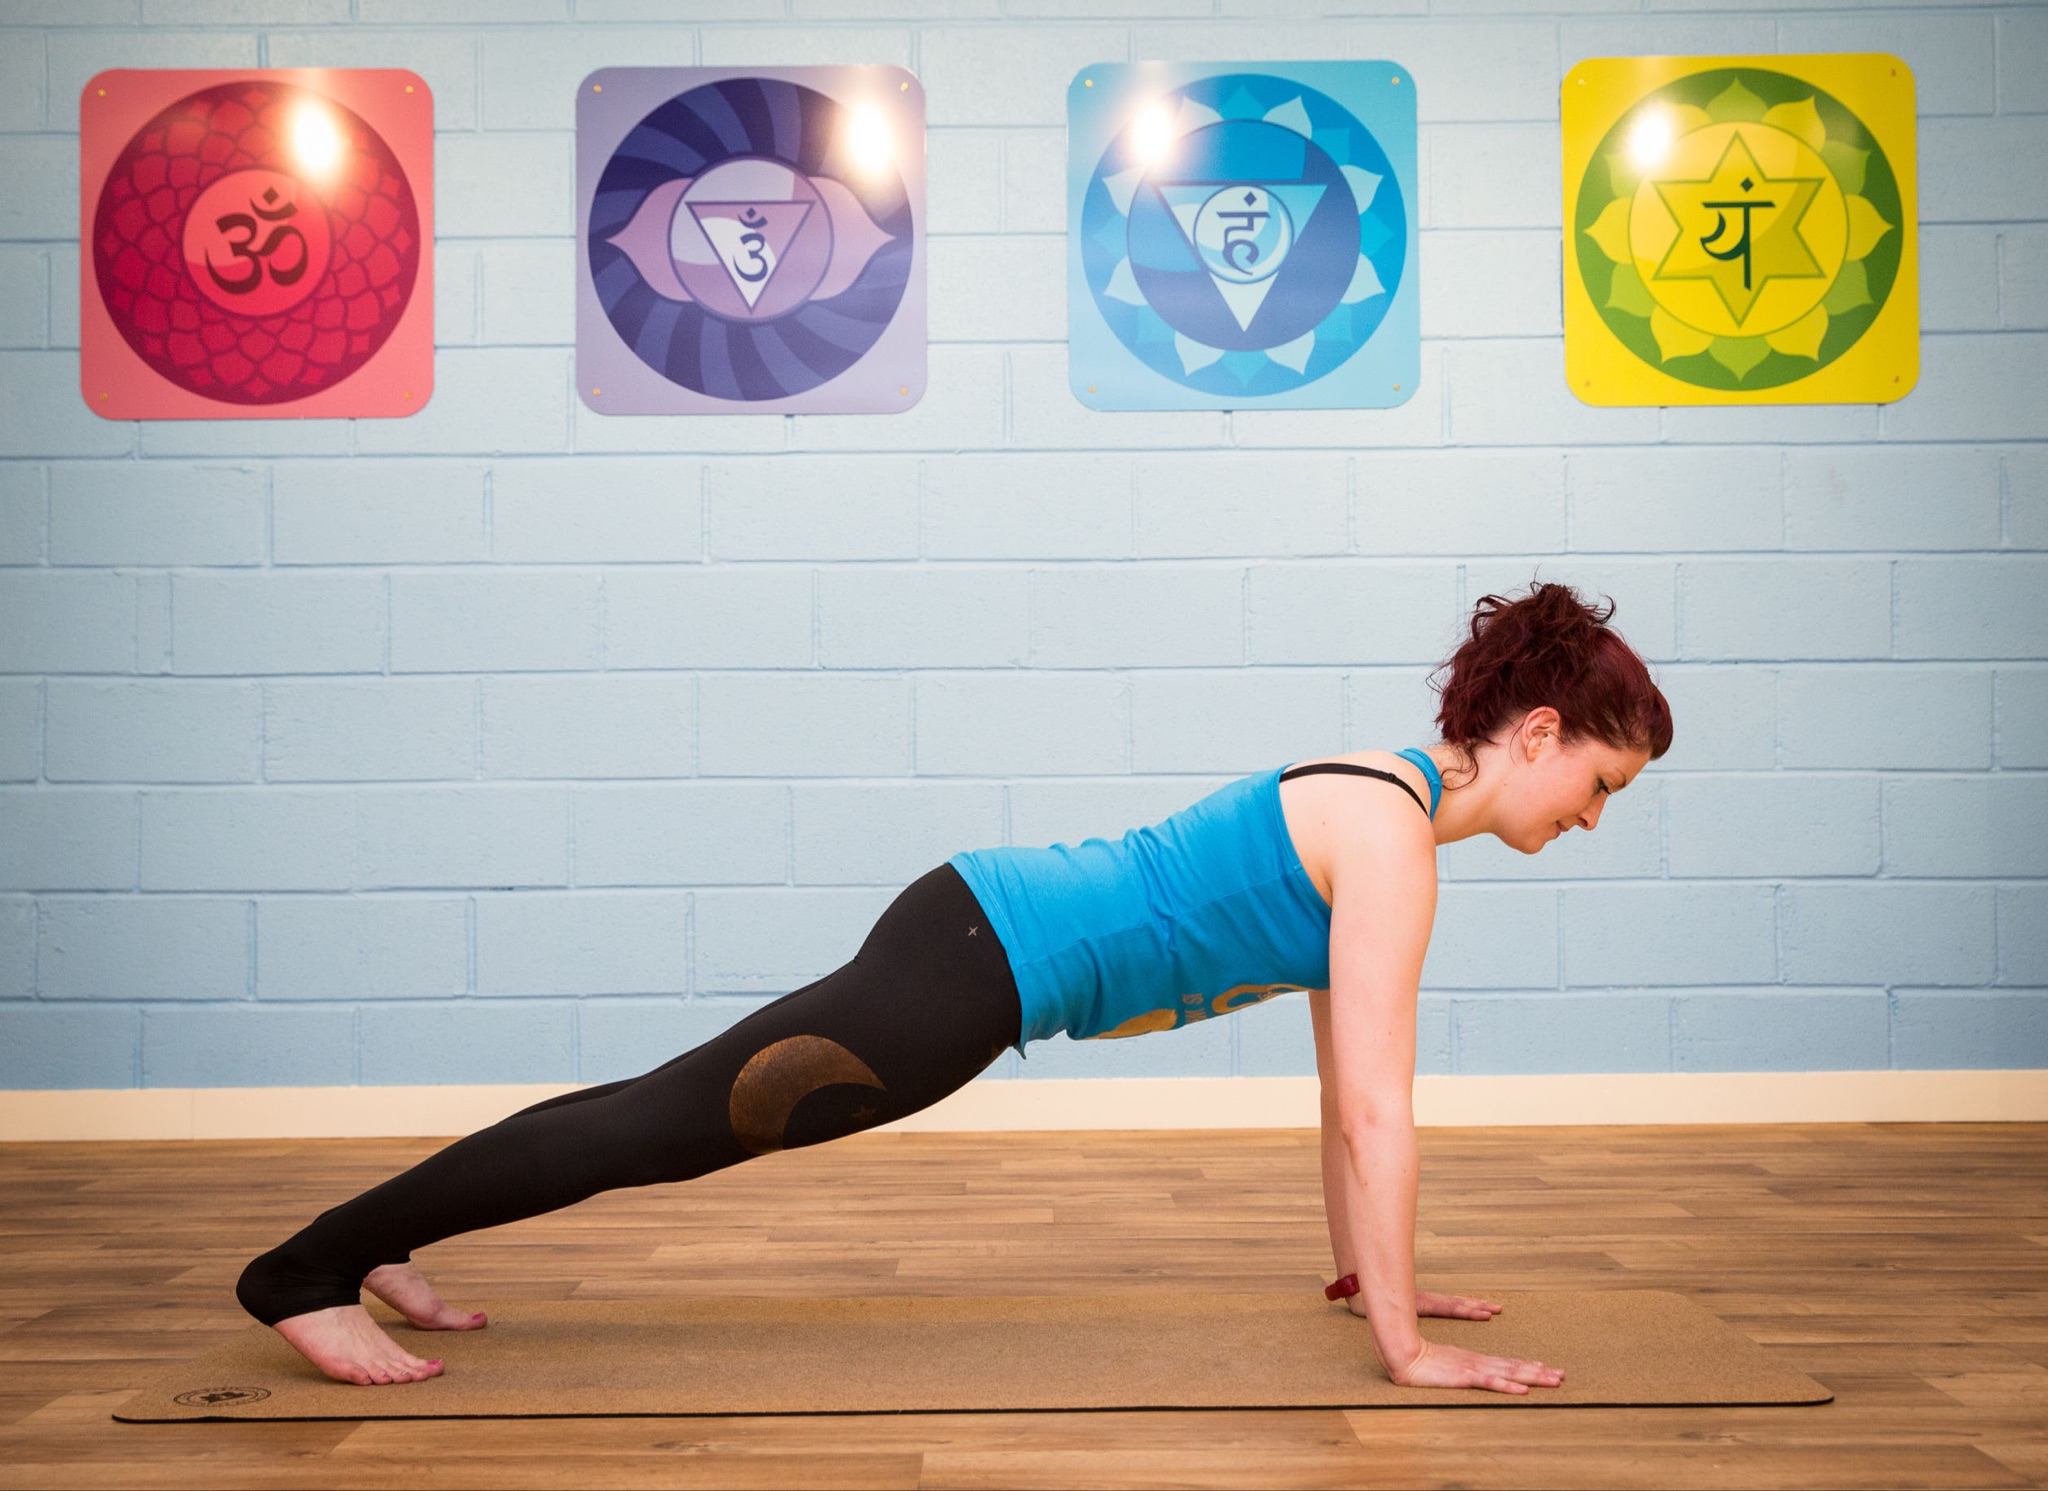 Plank pose is ideal for strengthening the core muscle group. Holding this pose  can be challenging,  however regular practice will improve strength in the deep transverse abdominals, pelvic floor, back, and obliques